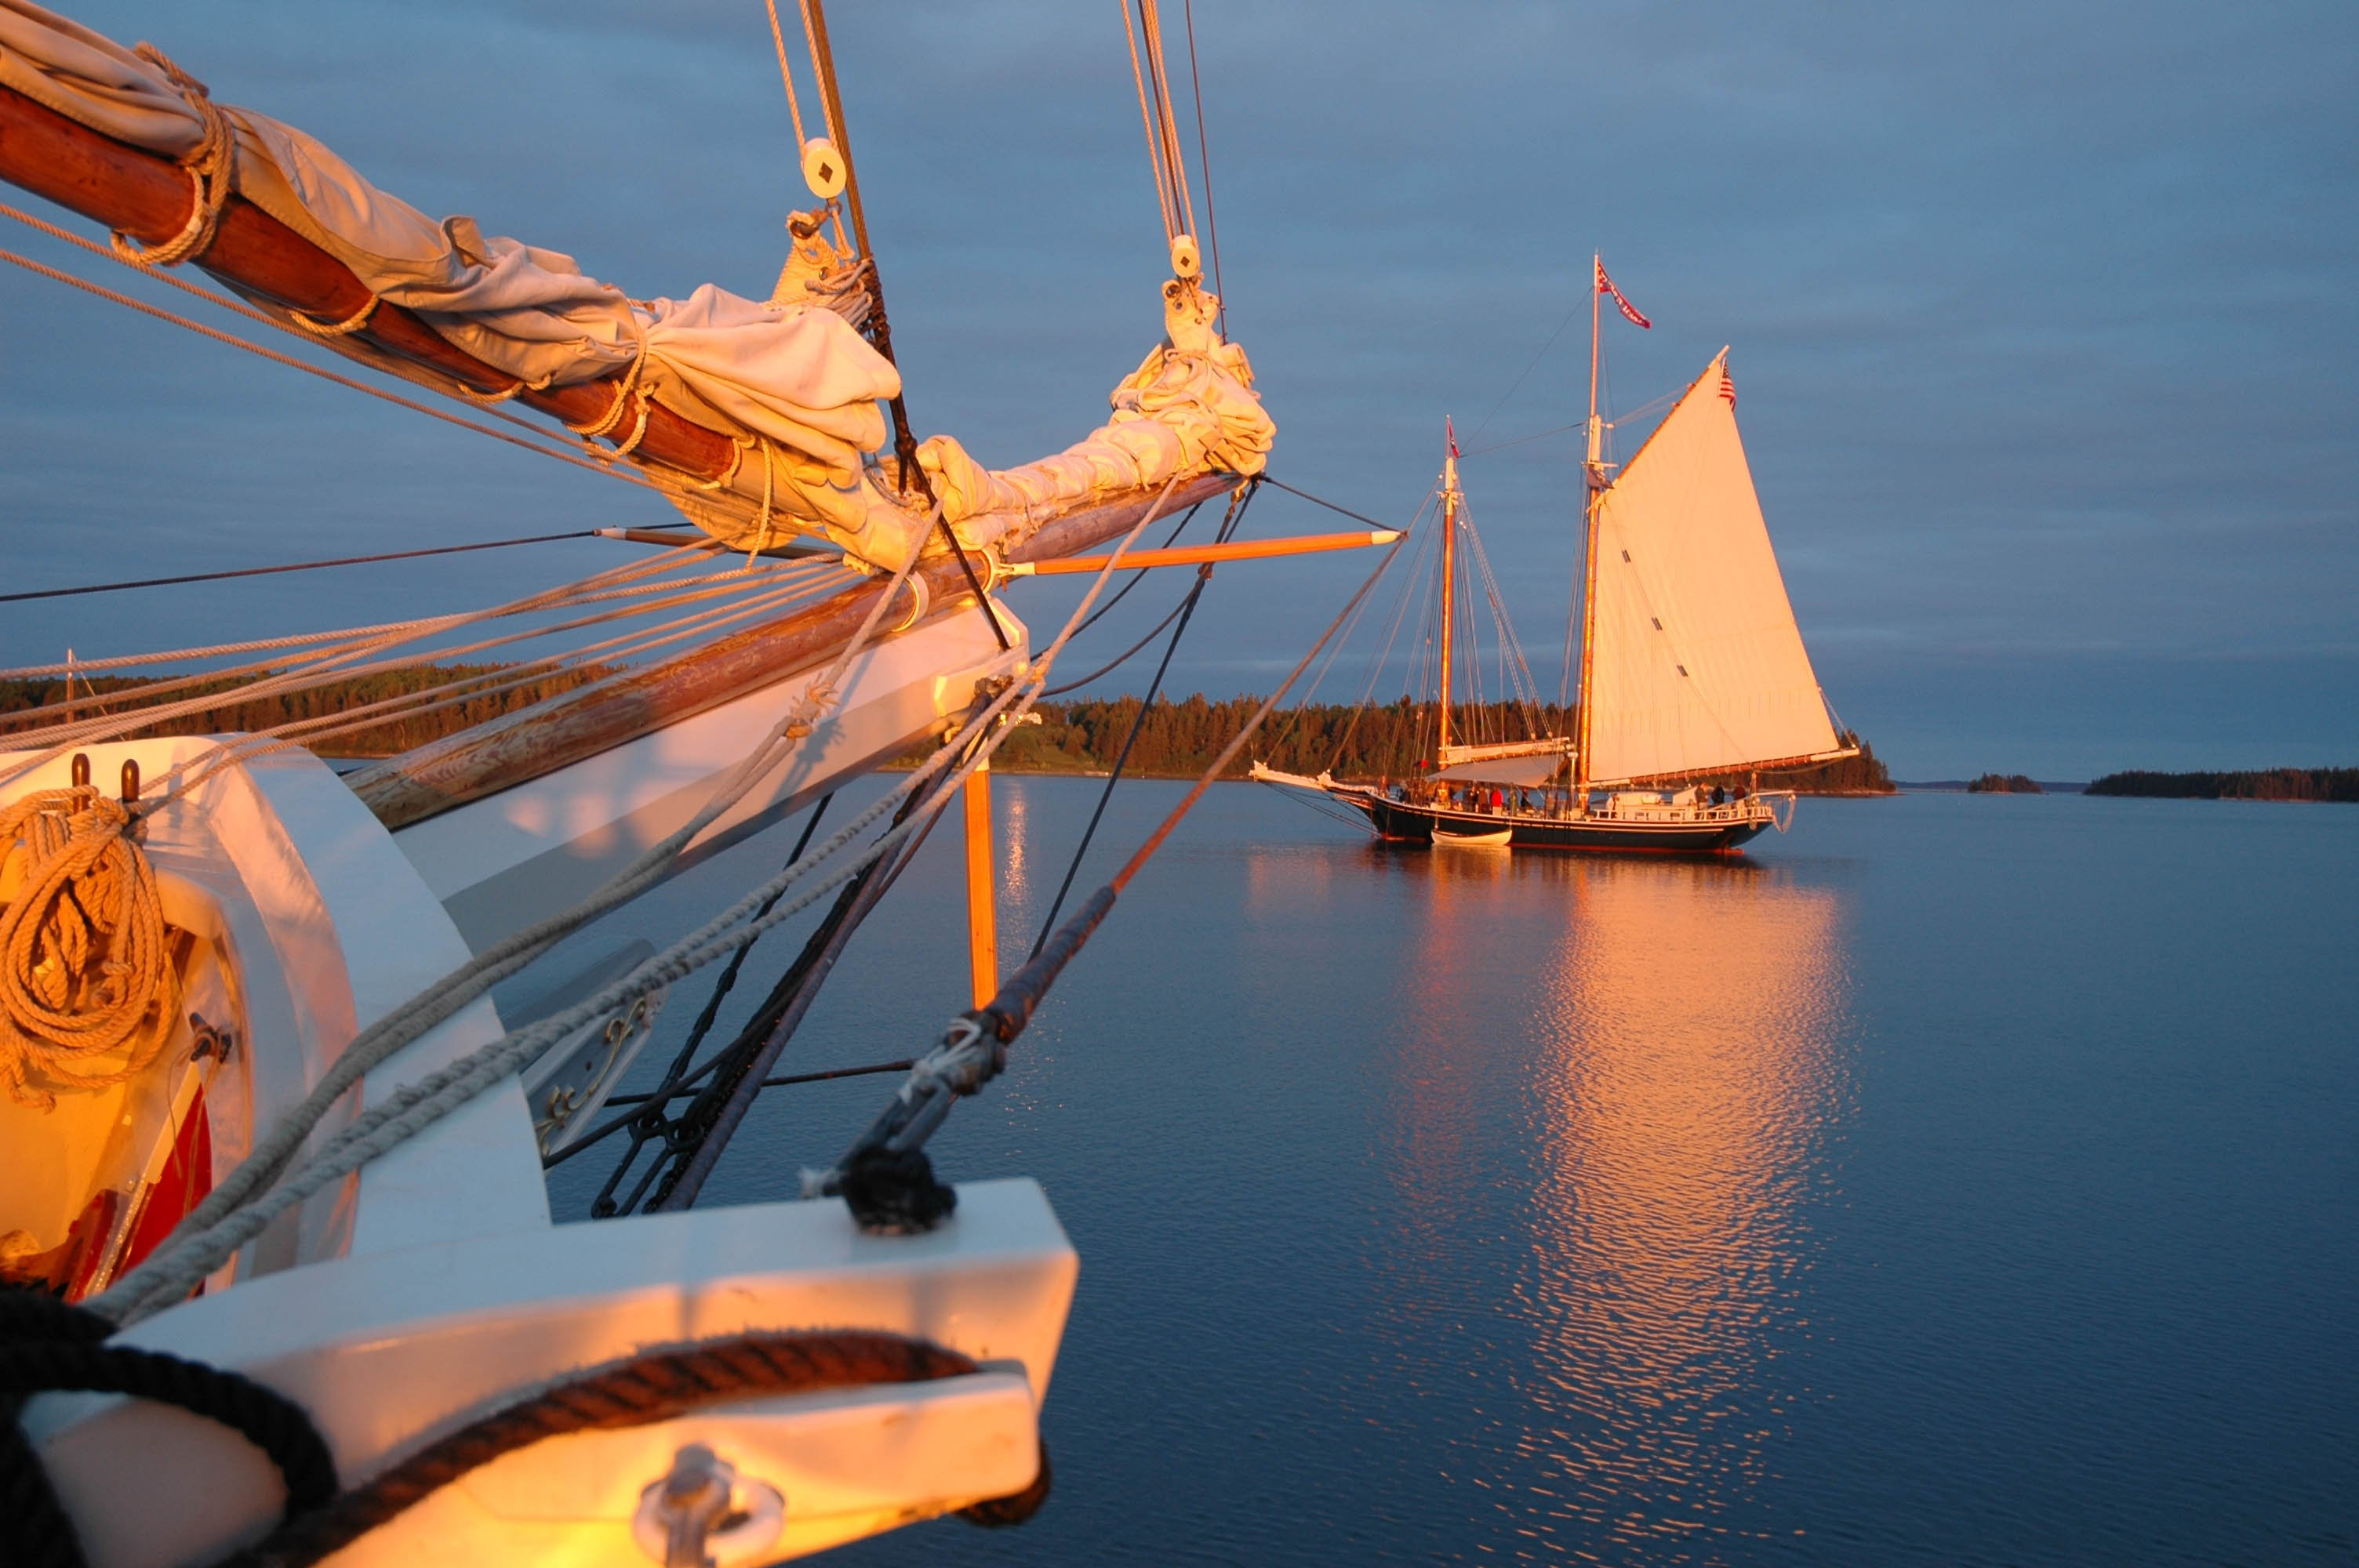 After a full day of sailing, guests enjoy a new anchorage each evening.